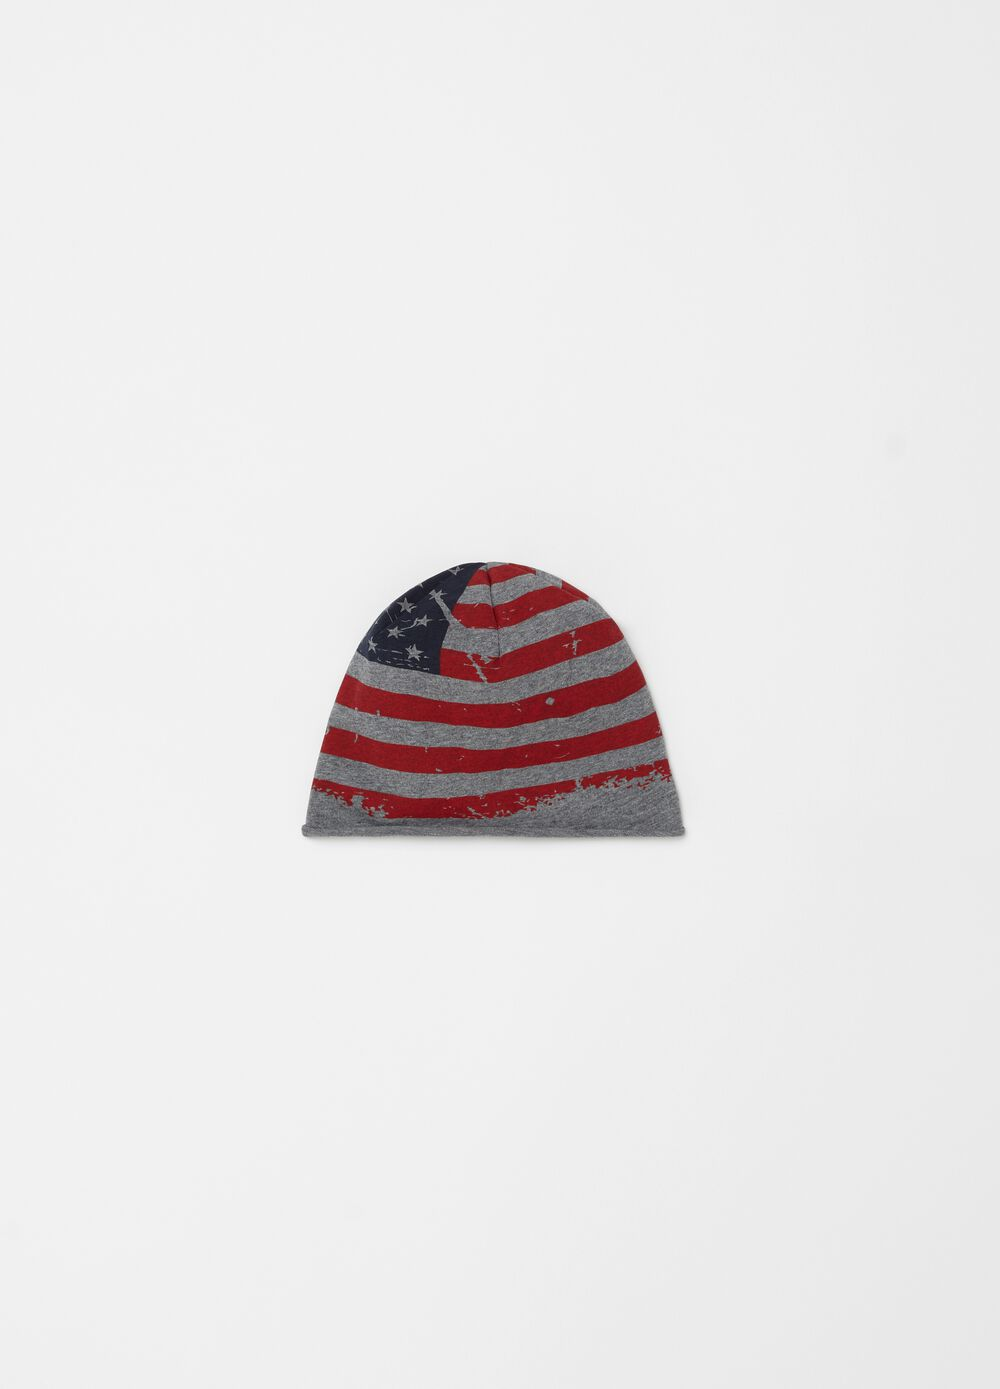 Mélange hat with USA flag print